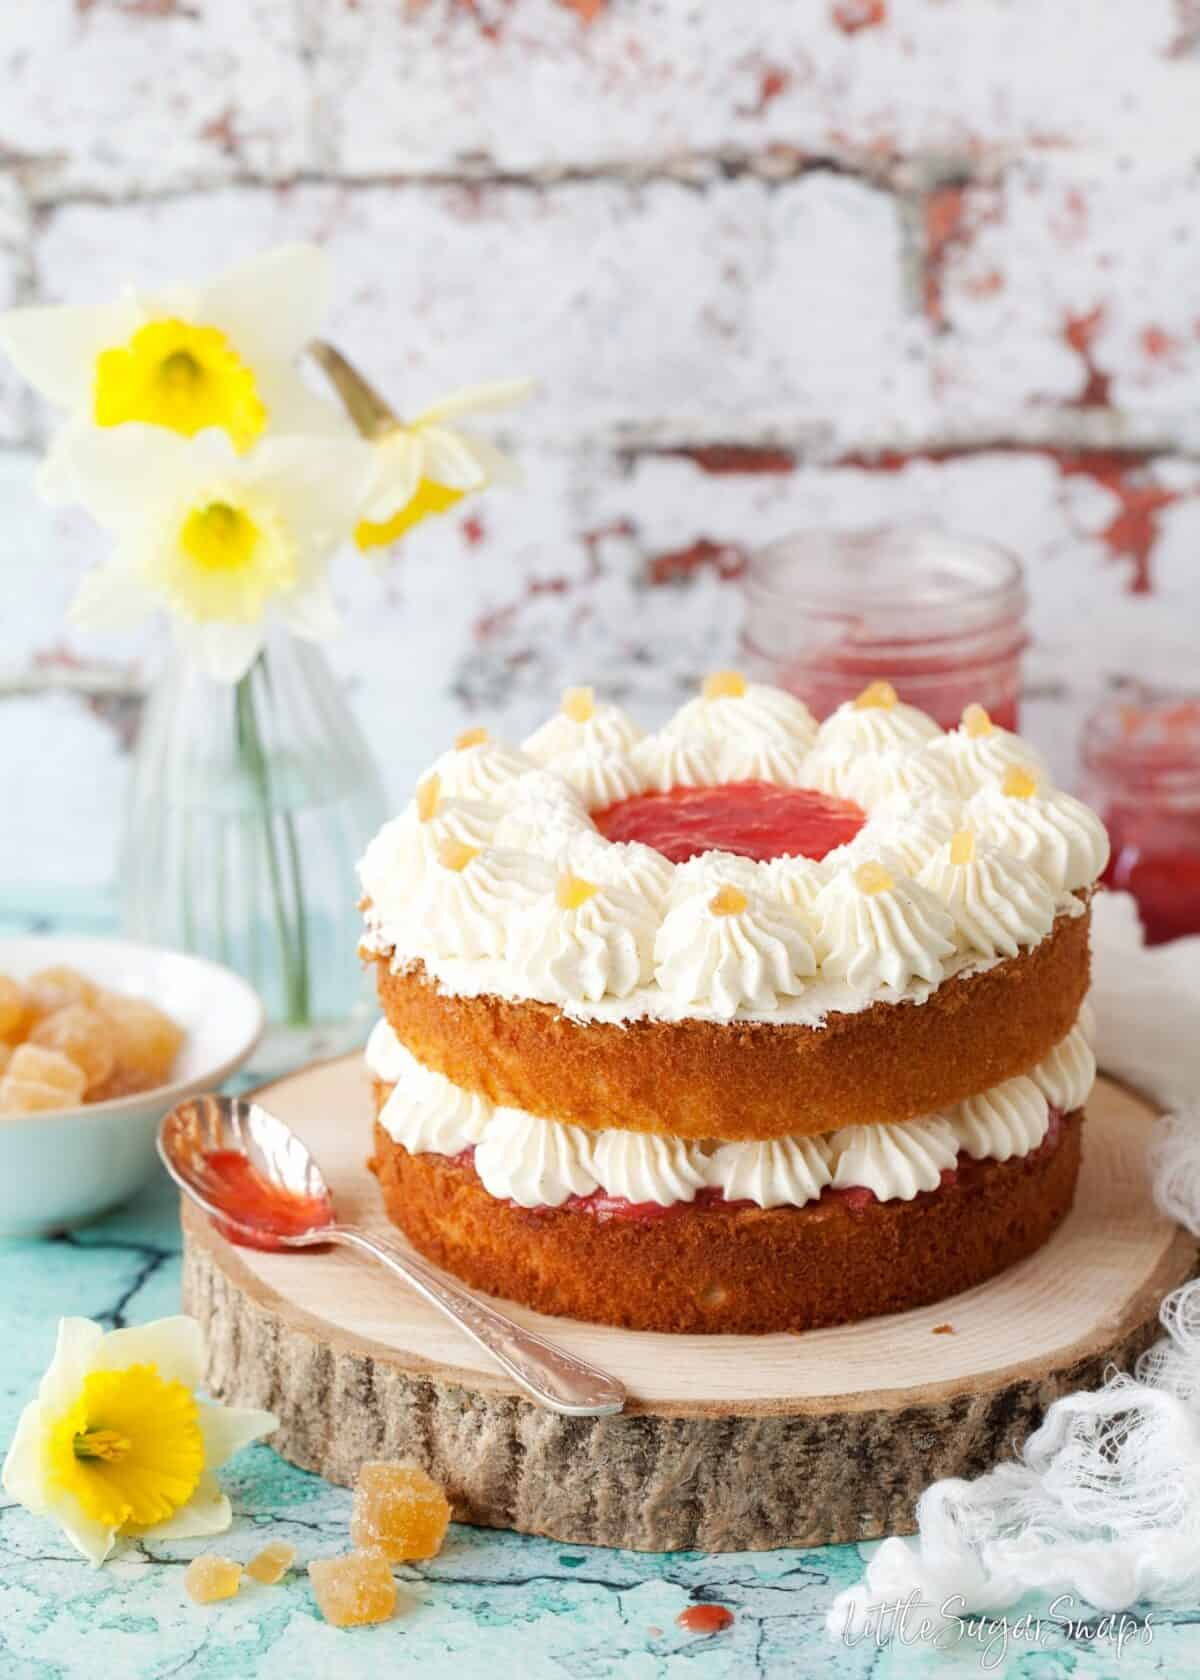 A vanilla sponge cake sandwiched with jam and whipped cream. Crystallised ginger and daffodils in shot. The cake is presented on a tree trunk style board